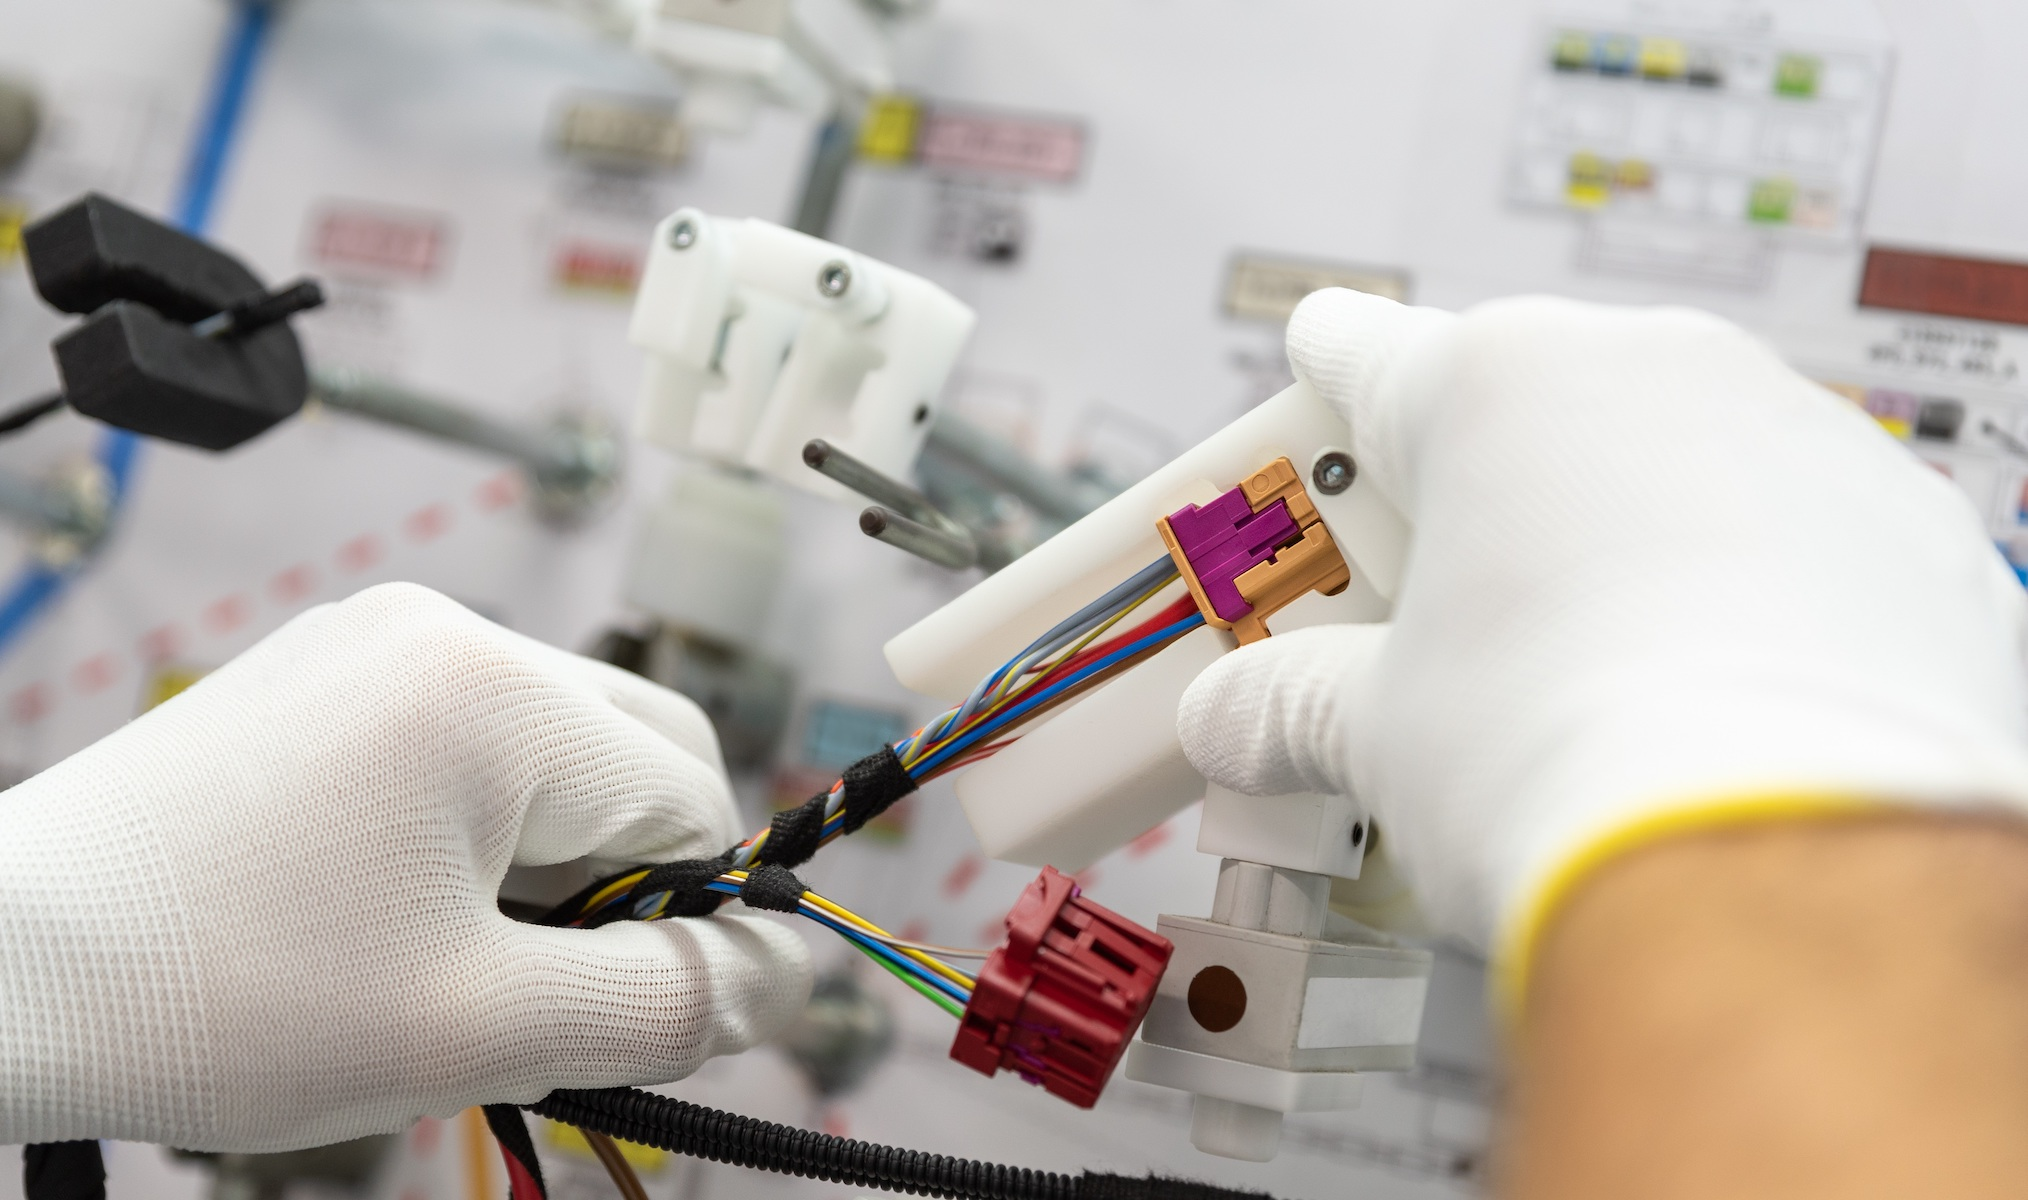 wiring harness production on layup board - cable assemblies